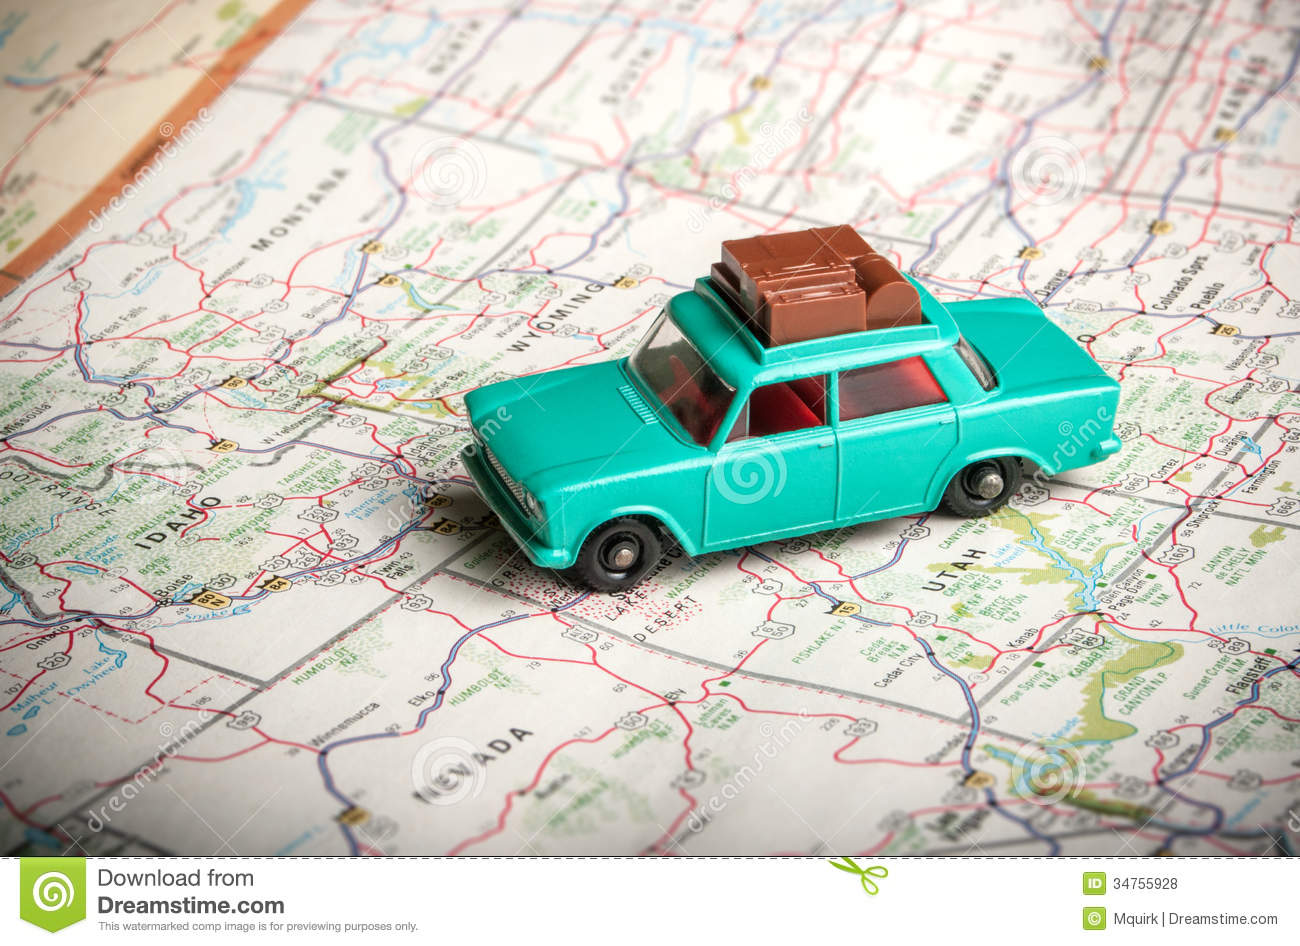 Roadmap Of The Us%0A Toy Car On A Road Map Royalty Free Stock Photos Image  Vintage us road map